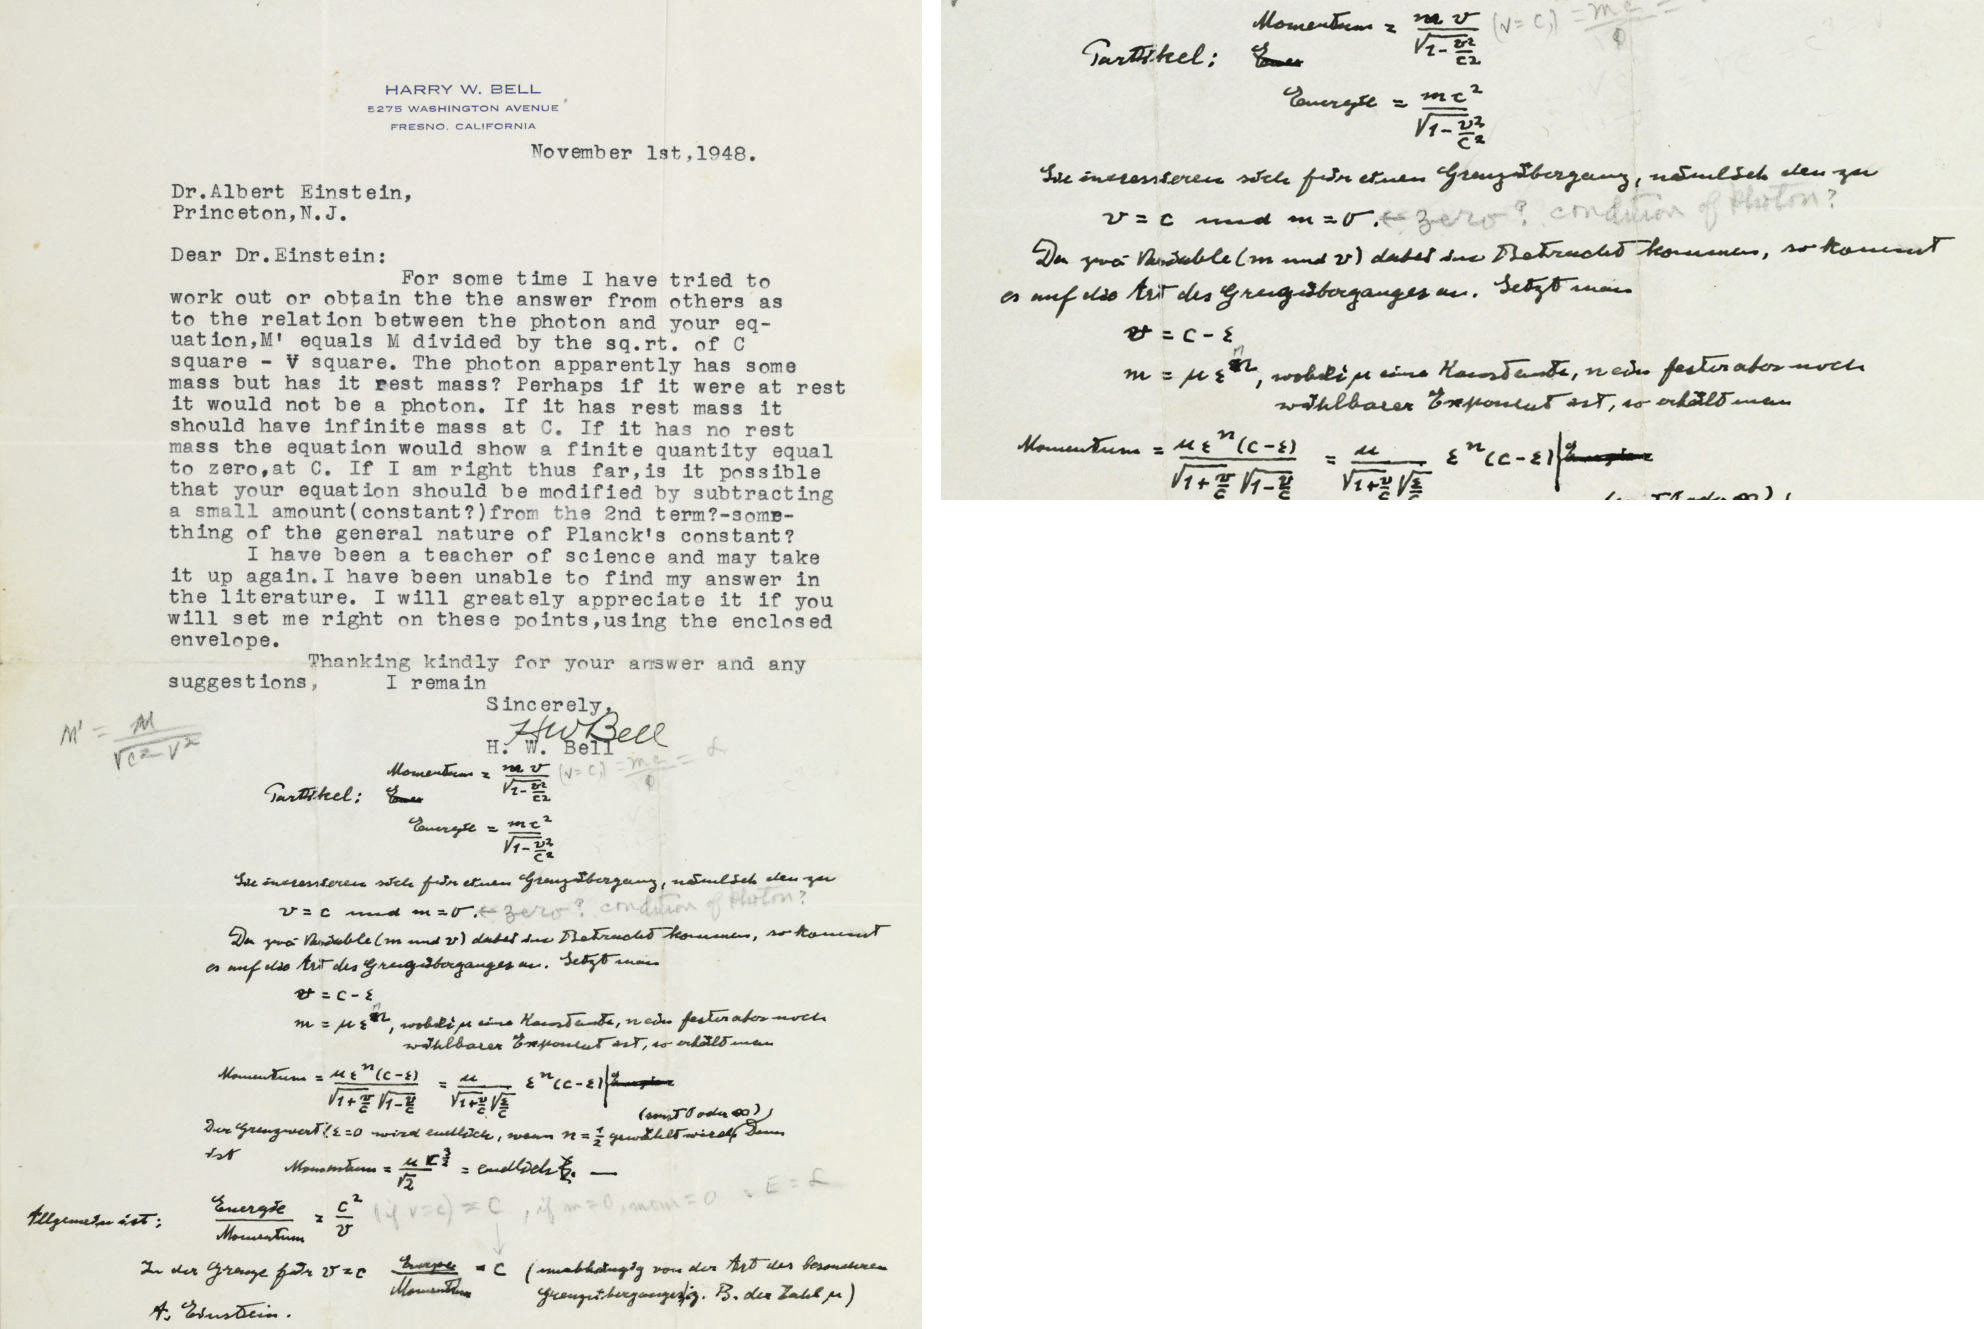 "EINSTEIN, Albert (1879-1955). Autograph scientific manuscript signed (""A. Einstein""), INCLUDING HIS FAMOUS FORMULA ""ENERGY=MC2..."", added in blank portion of a Typed letter signed from H. W. Bell to Einstein, 1 November 1948. 1 page, 4to, with pencil notations in another hand. Einstein's text in German."